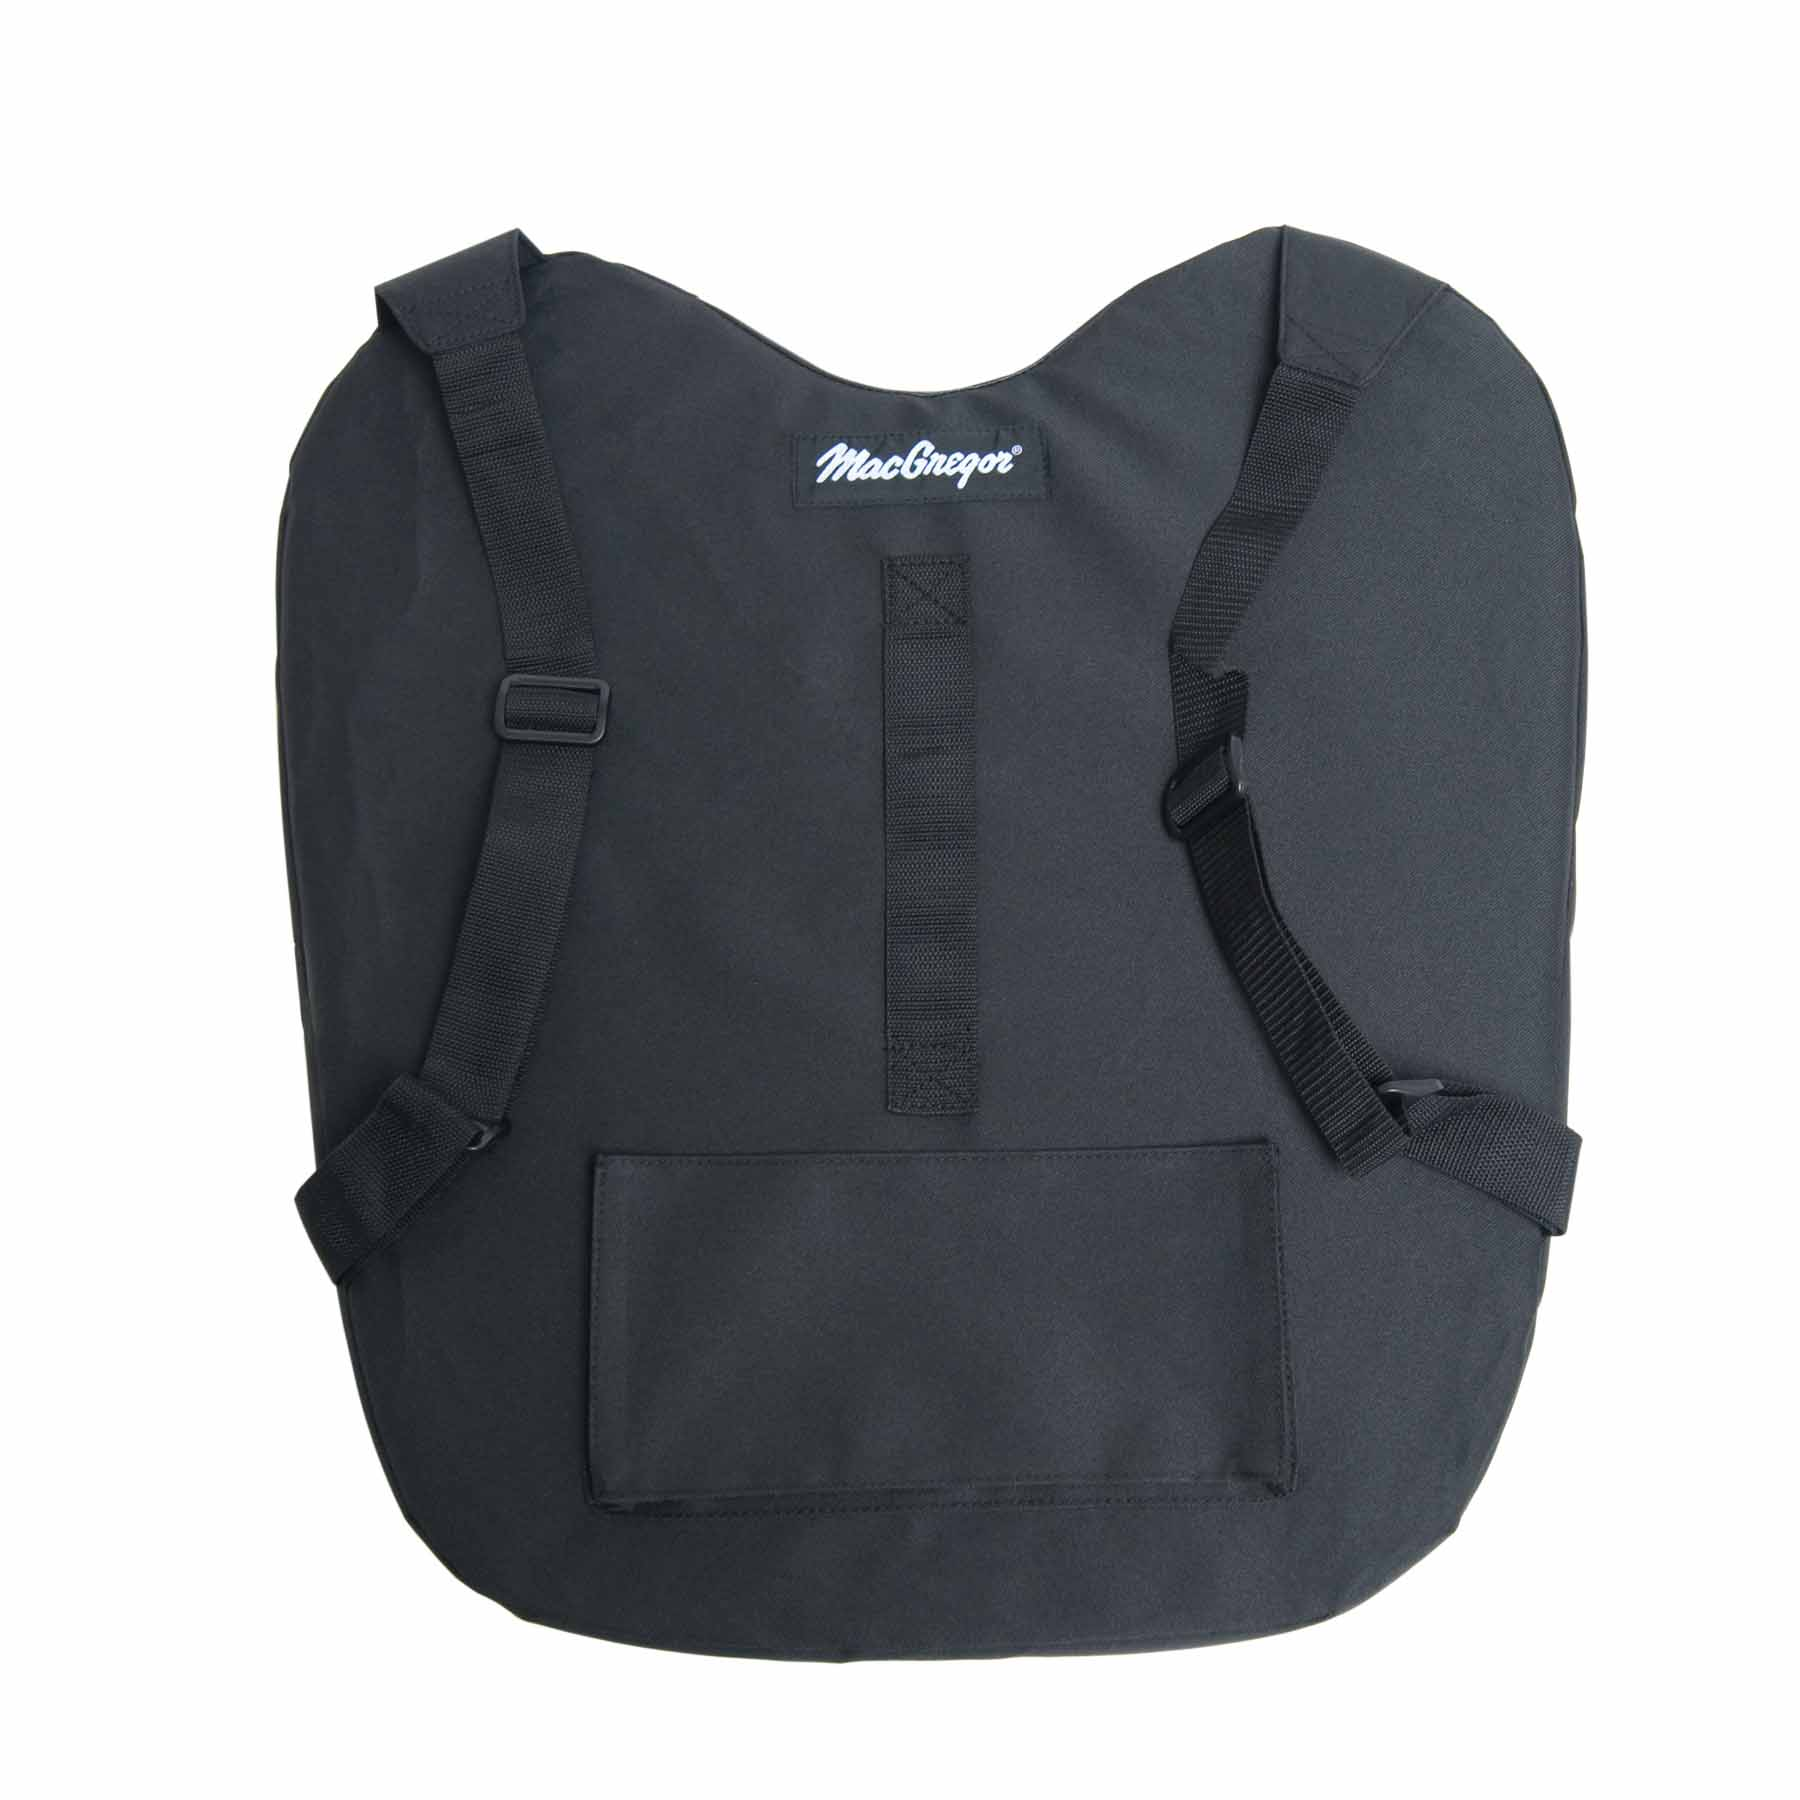 Umpire's Outside Chest Protector